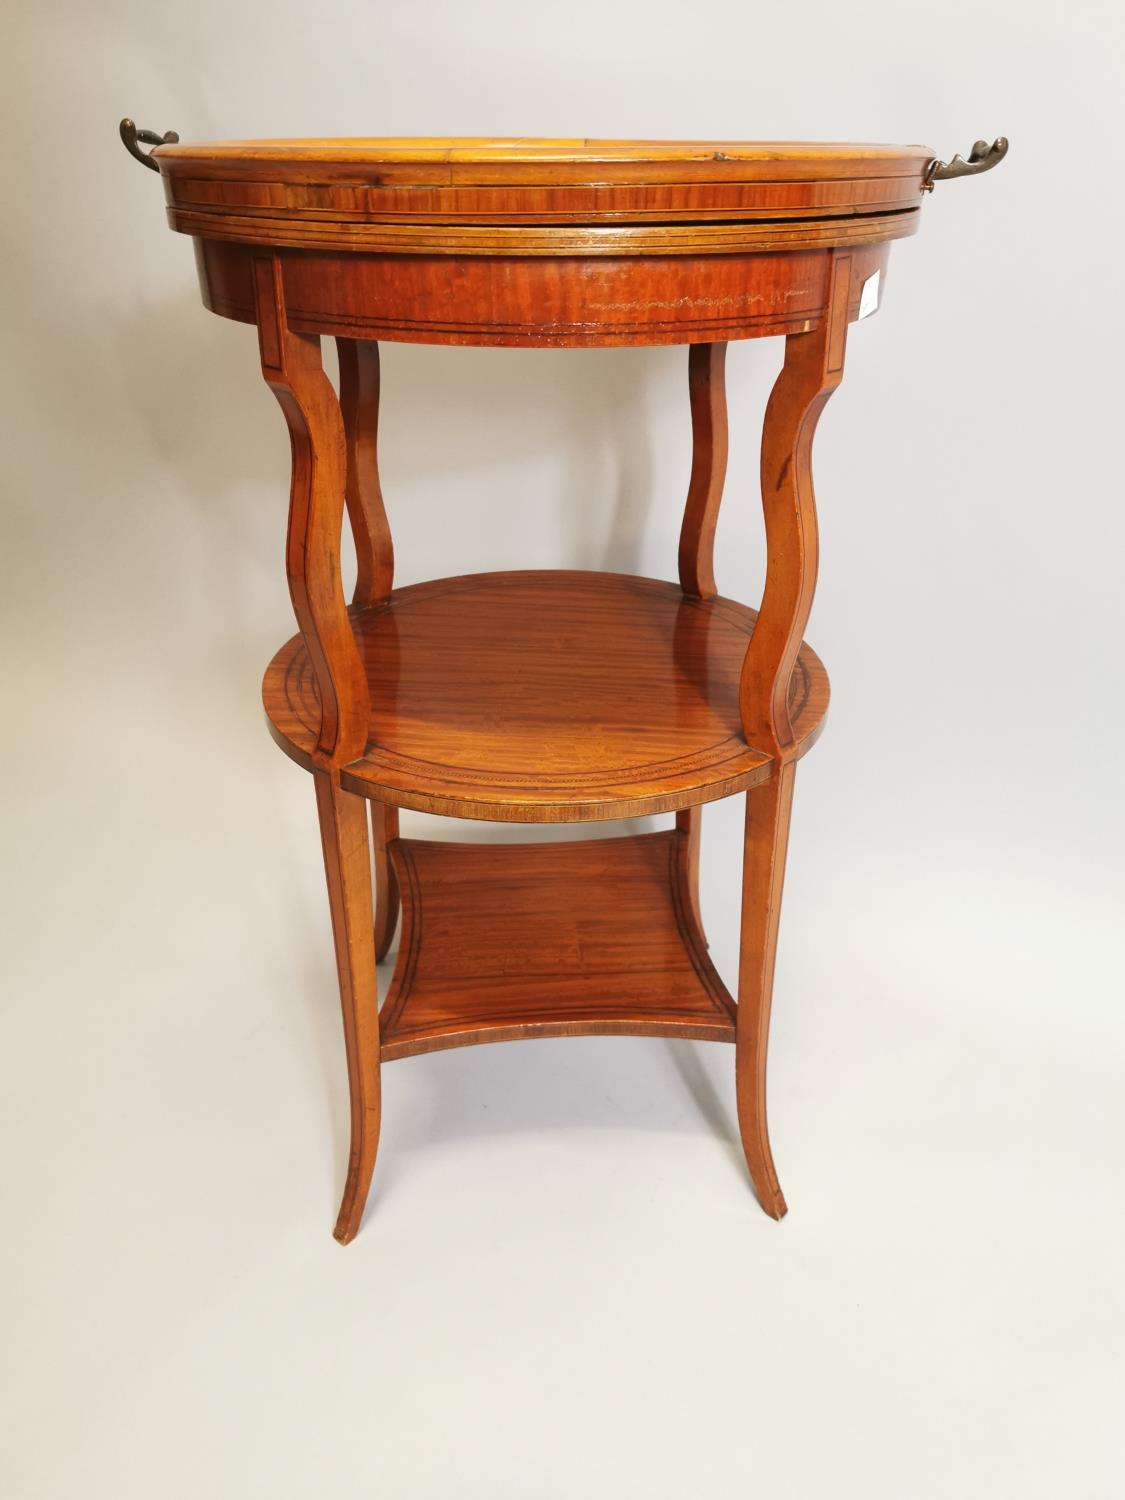 19th. C. satinwood wine table - Image 5 of 5